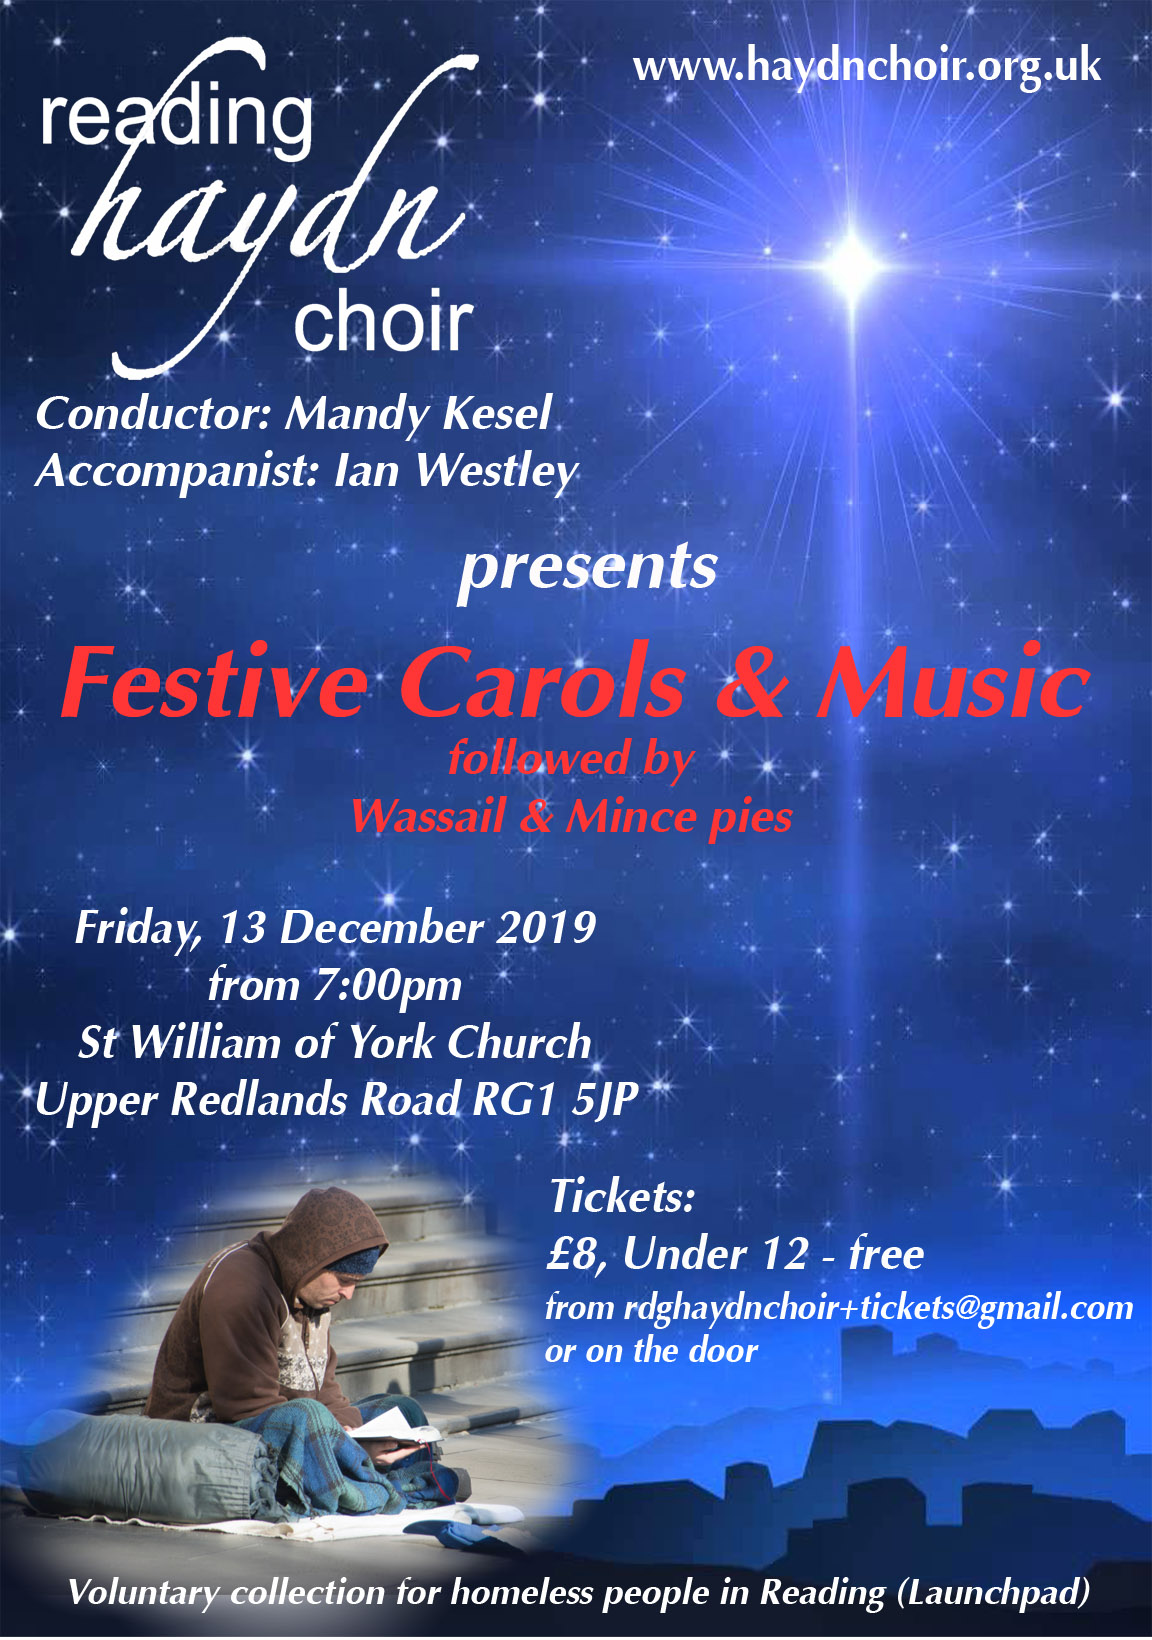 Reading Haydn Choir - Cristmas Carol Concert